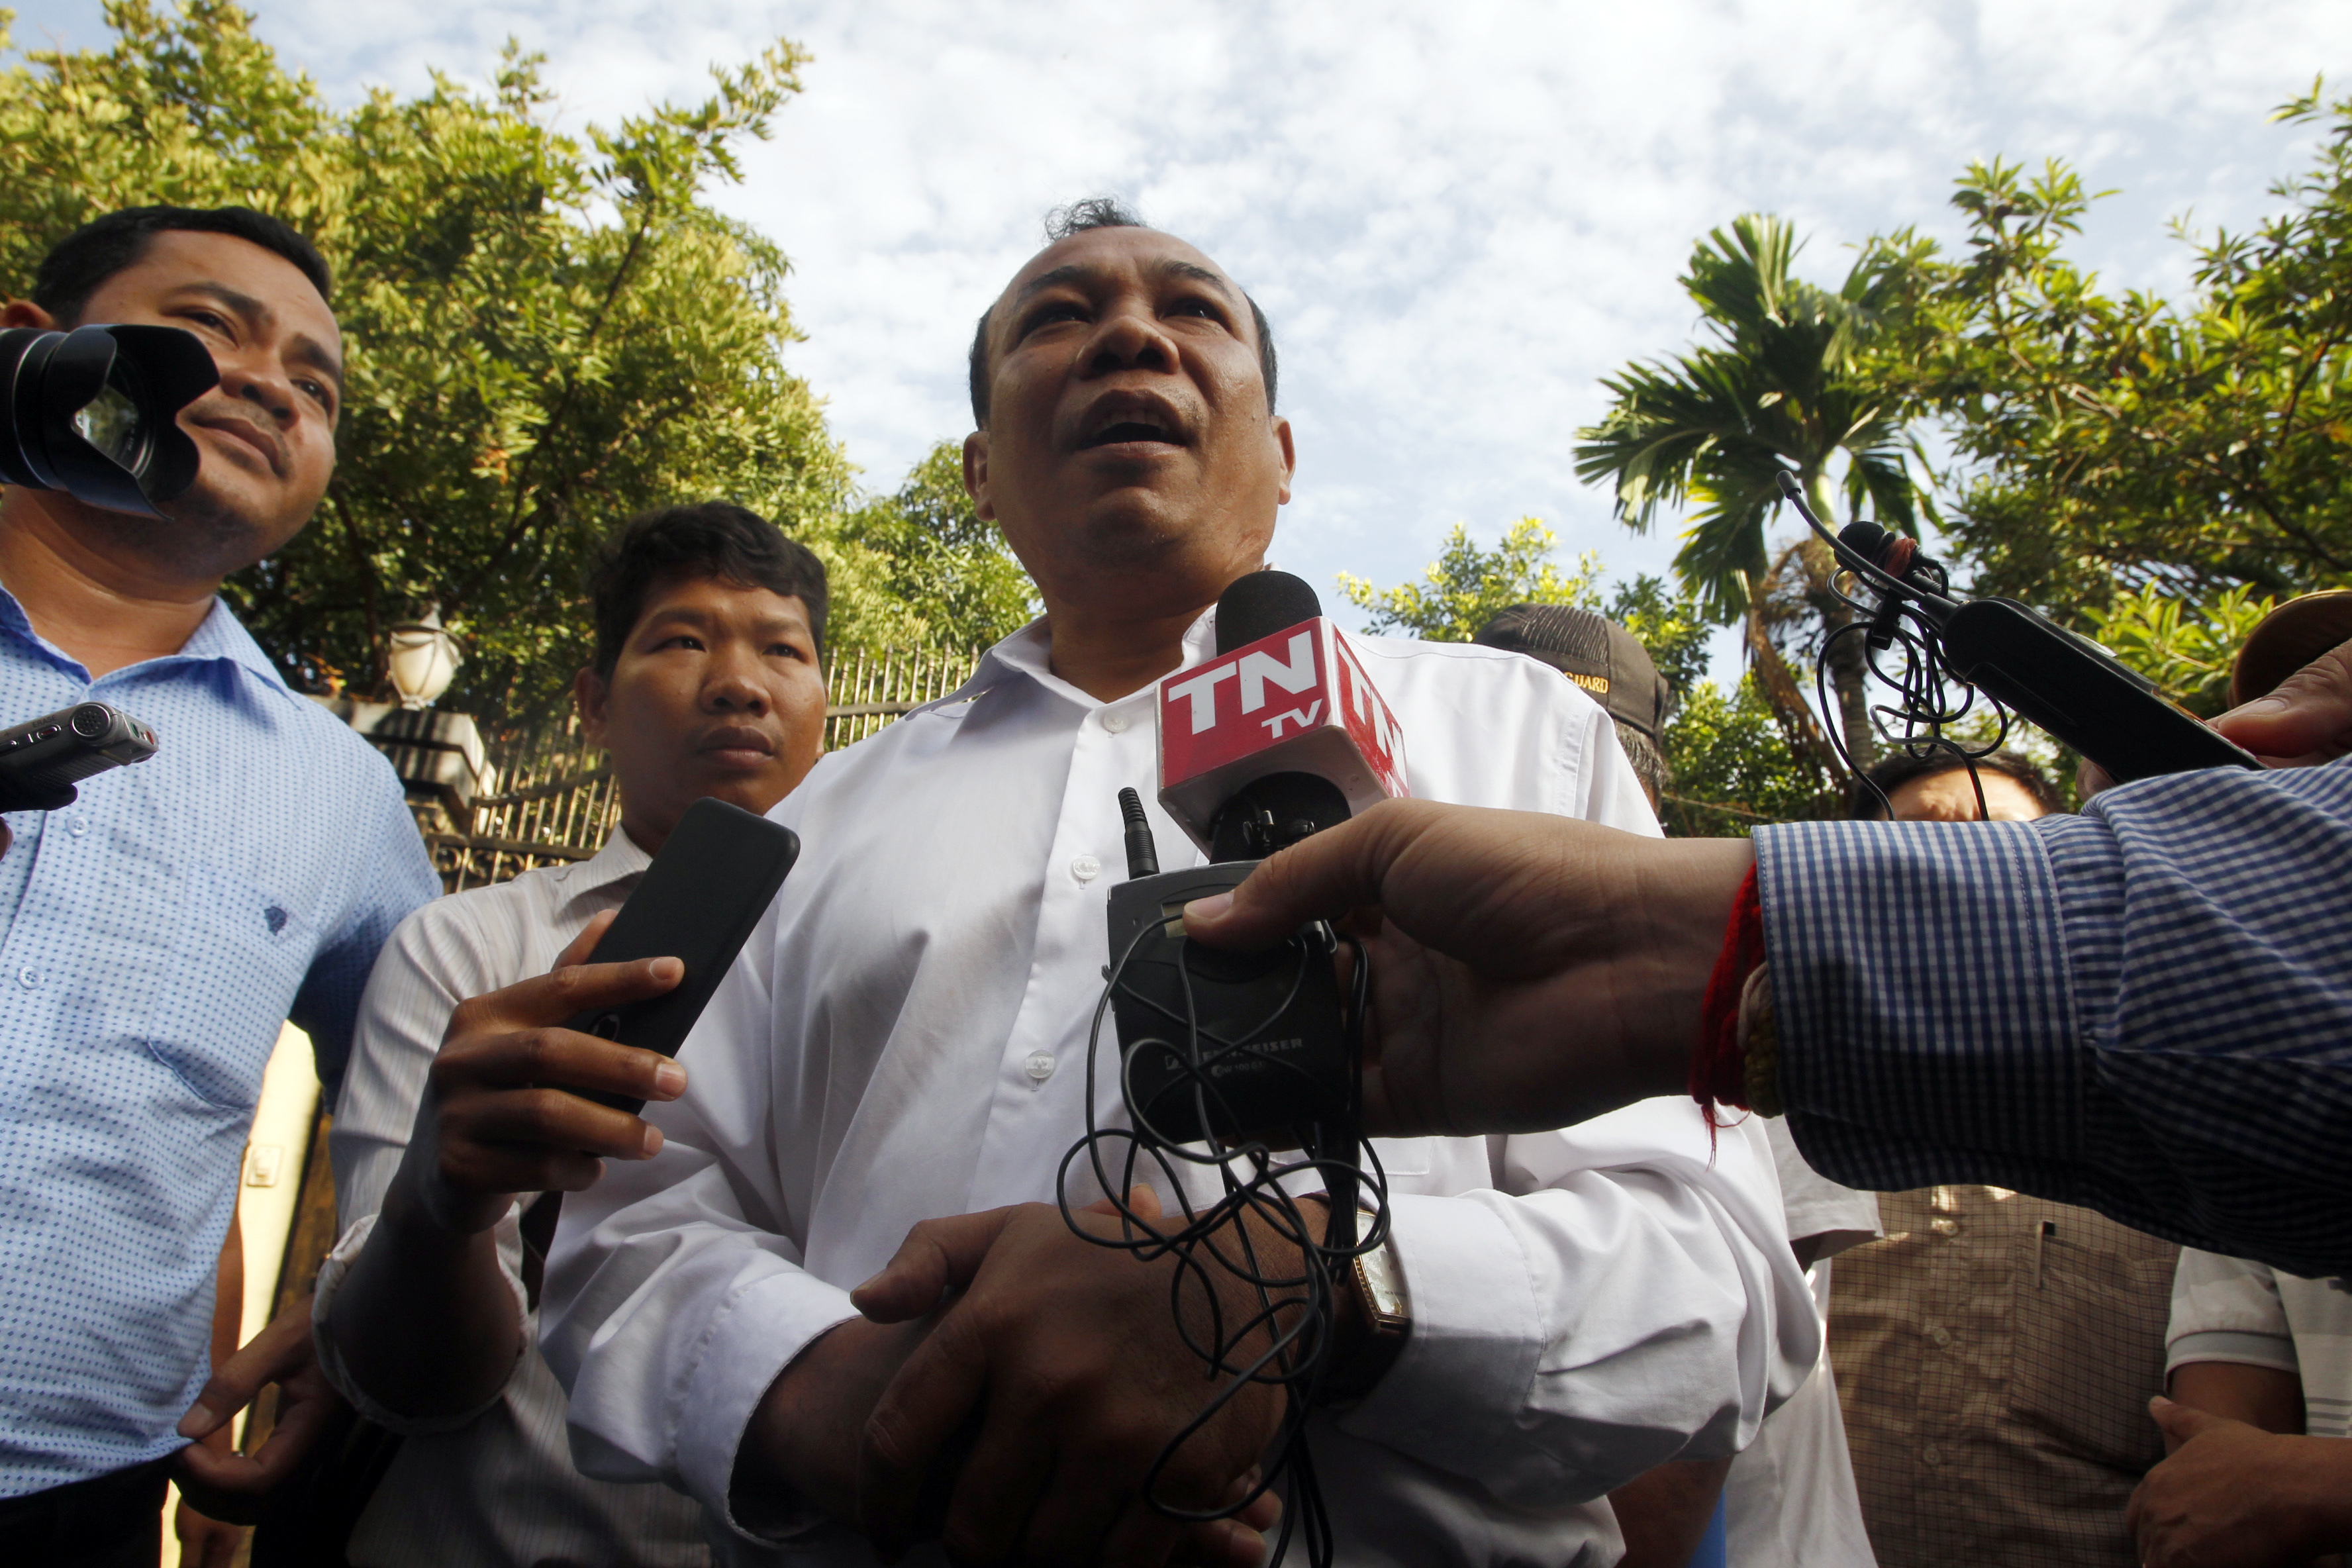 Chan Chen, center, lawyer to Kem Sokha, former leader of now dissolved opposition Cambodia National Rescue Party, talks with the media in front of his home in Phnom Penh, Sept. 10, 2018.